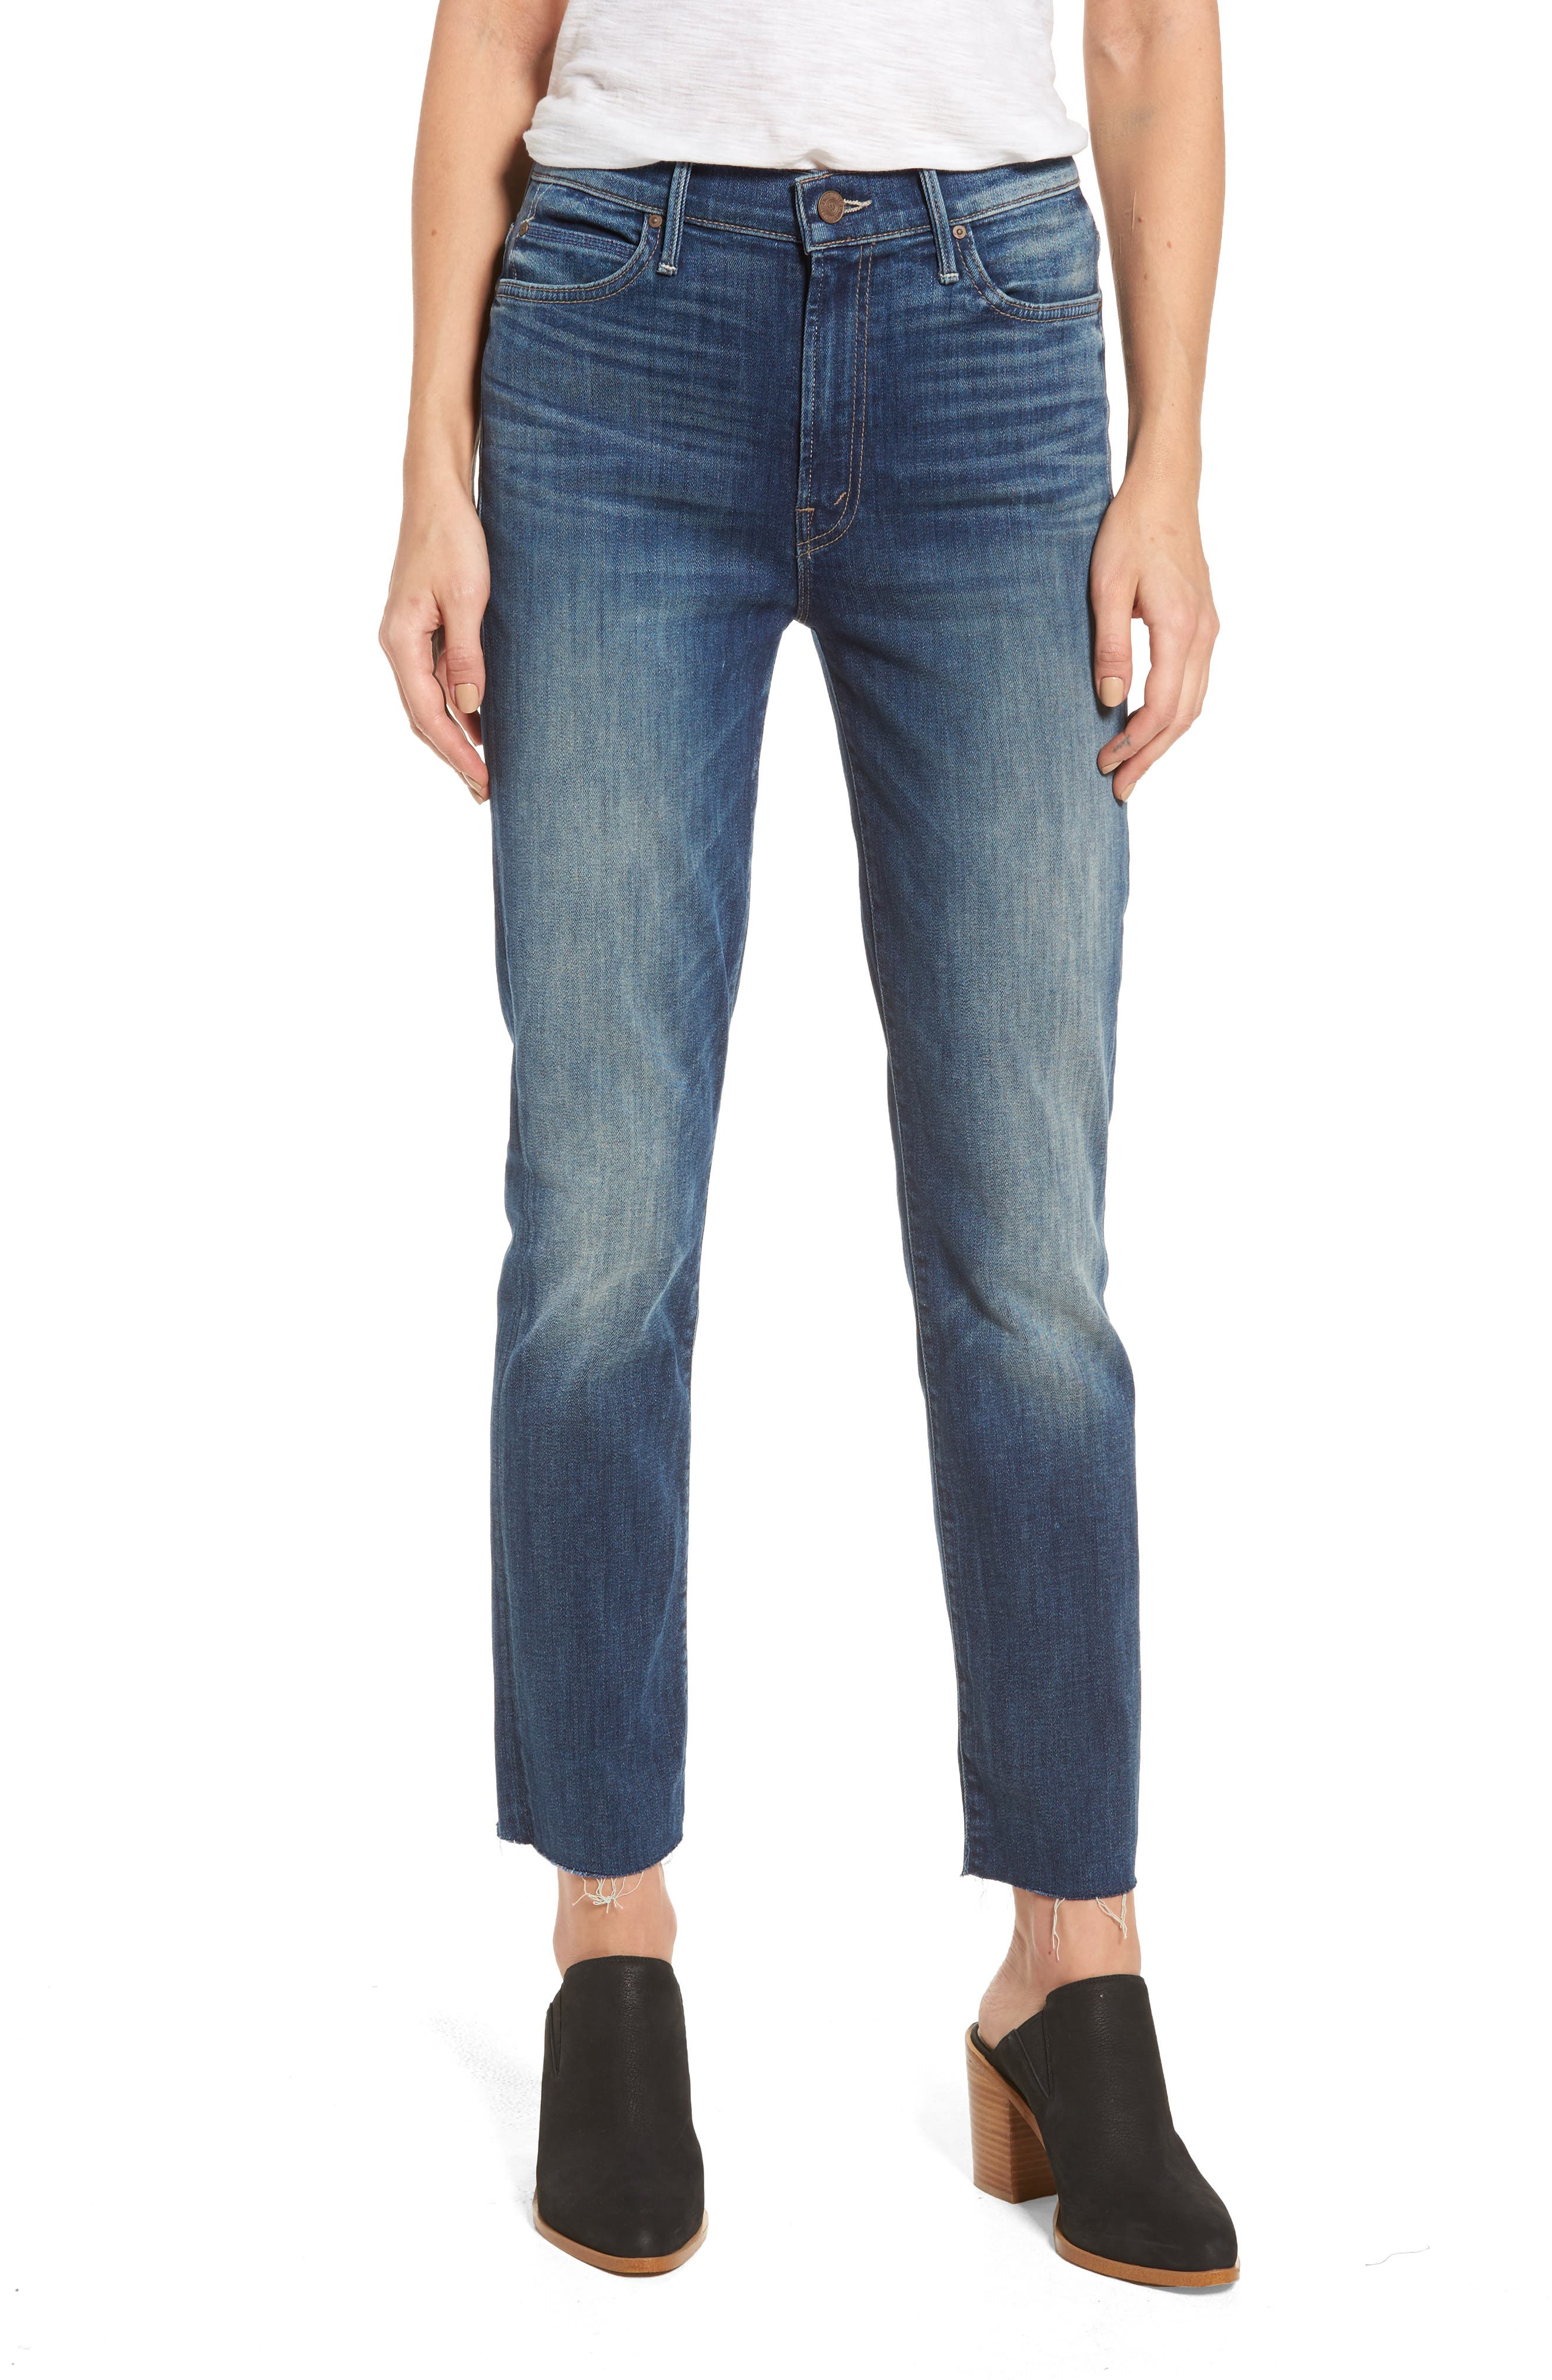 MOTHER Rascal Straight Leg Ankle Jeans (Whattcha Got Cookin)